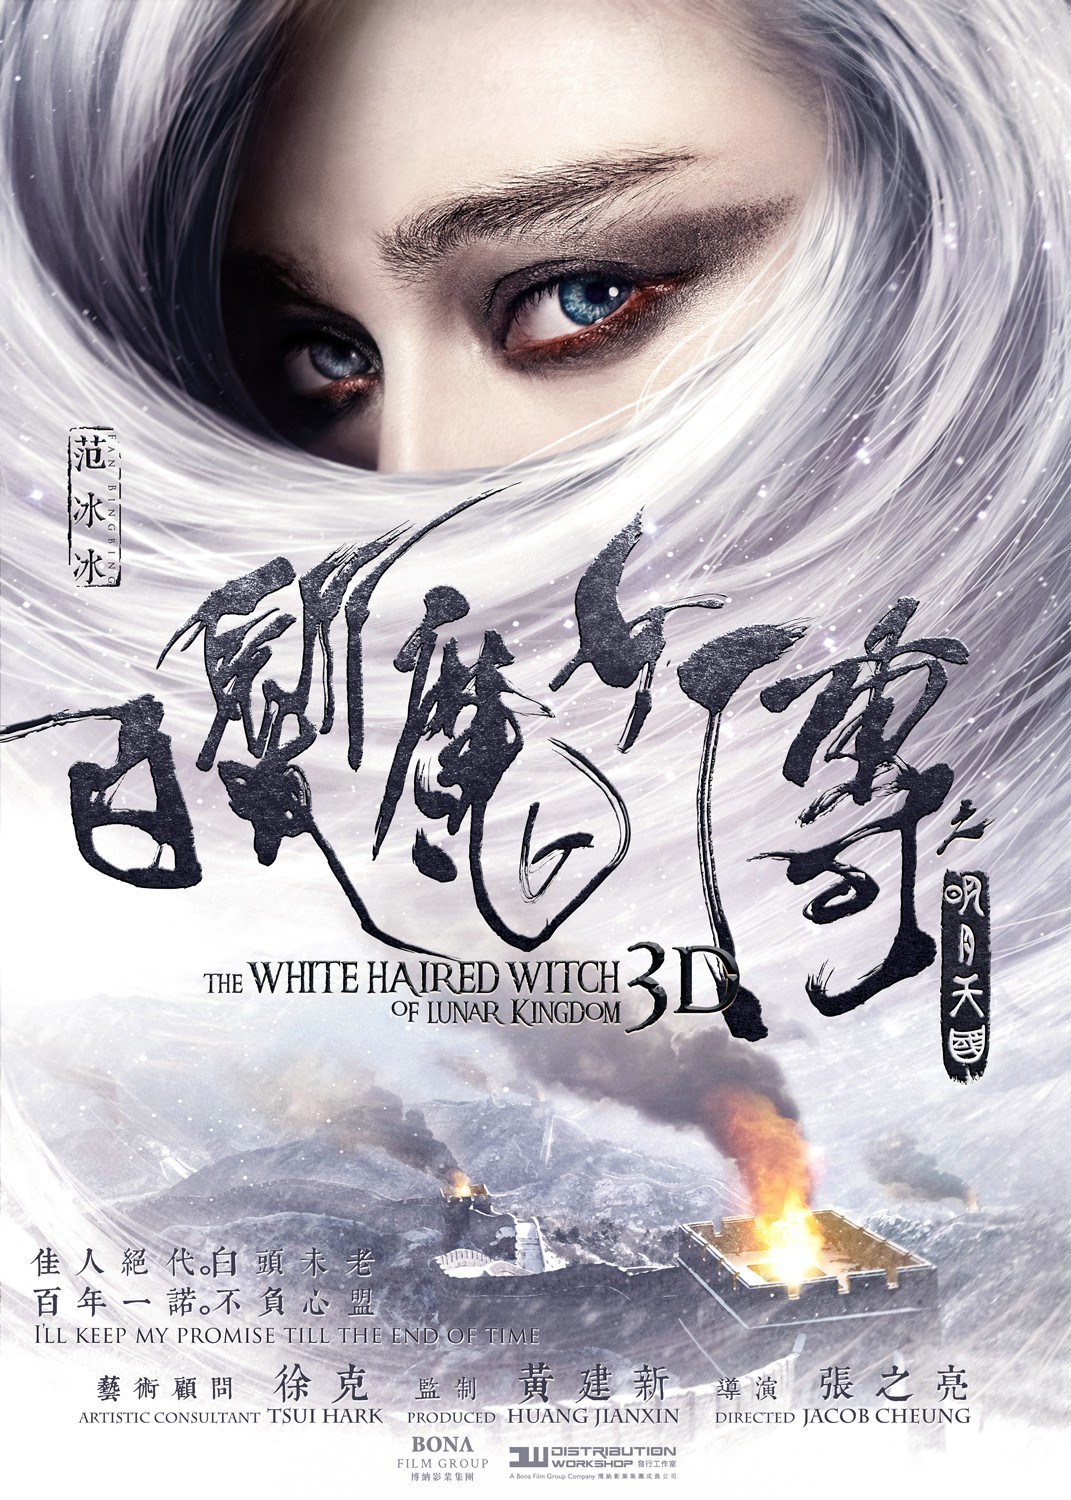 HD0292 - The white haired witch of Lunar kingdom 2014 - Bạch pháp ma nữ